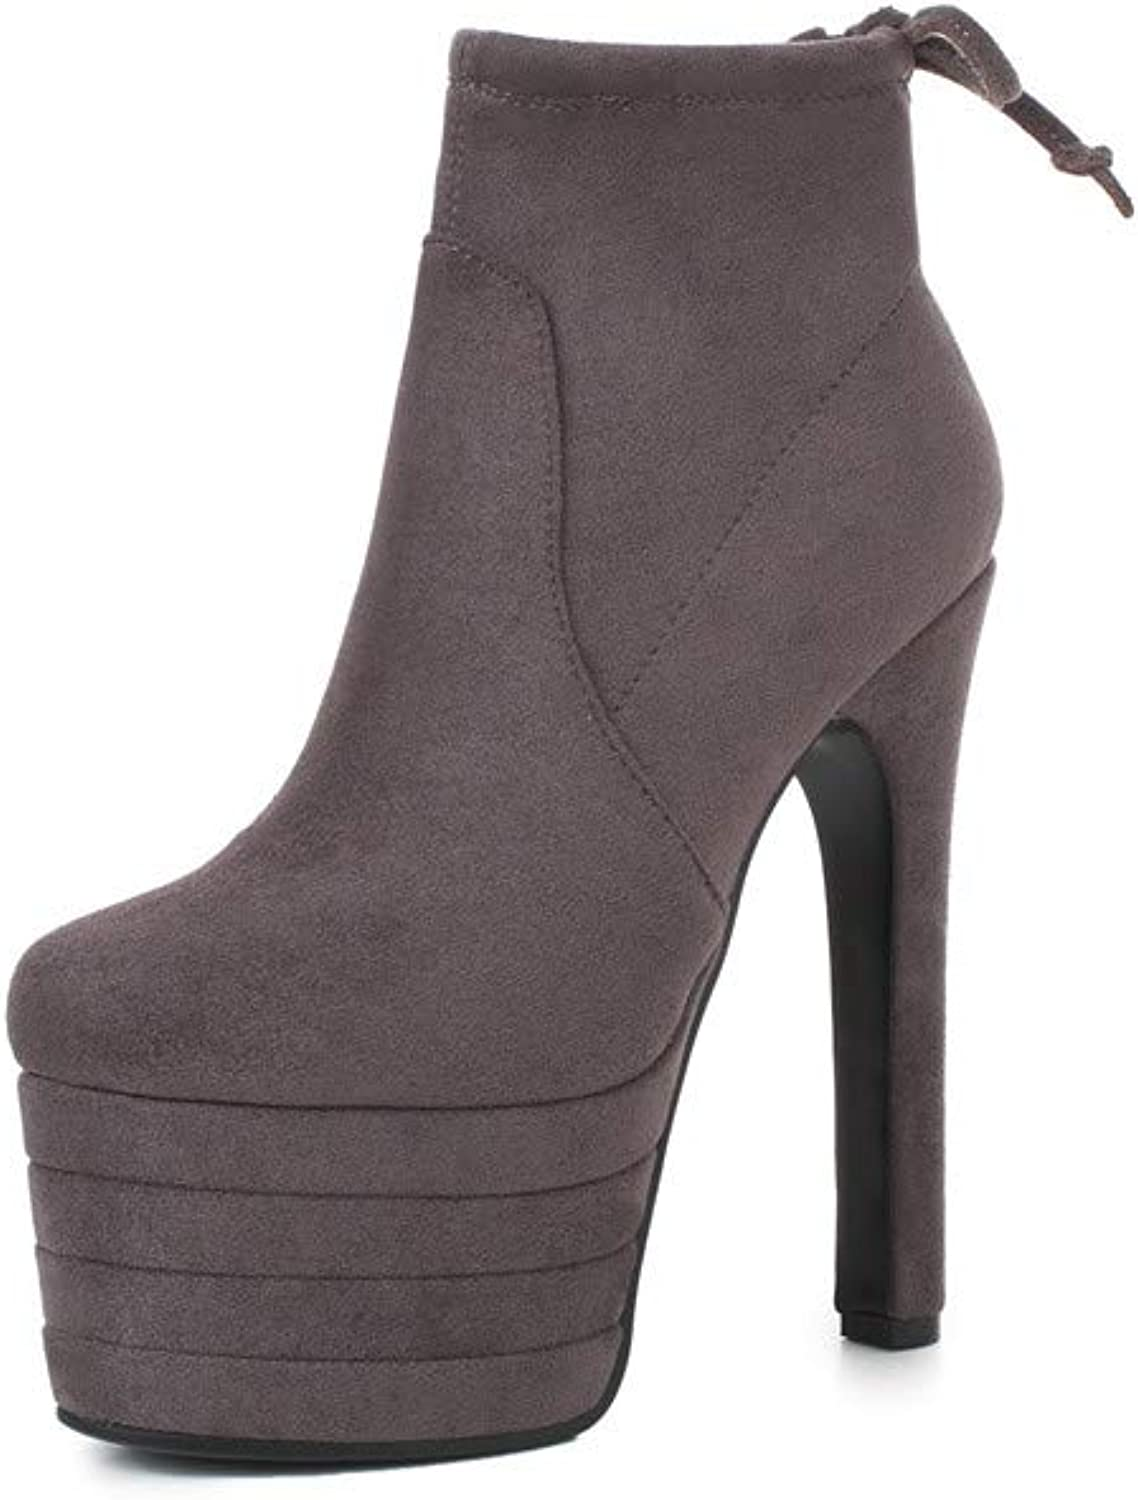 Nine Seven Women's Suede Leather Round Toe Sexy Stiletto Heel Handmade Glossy and Comfortable Platform Ankle Boots